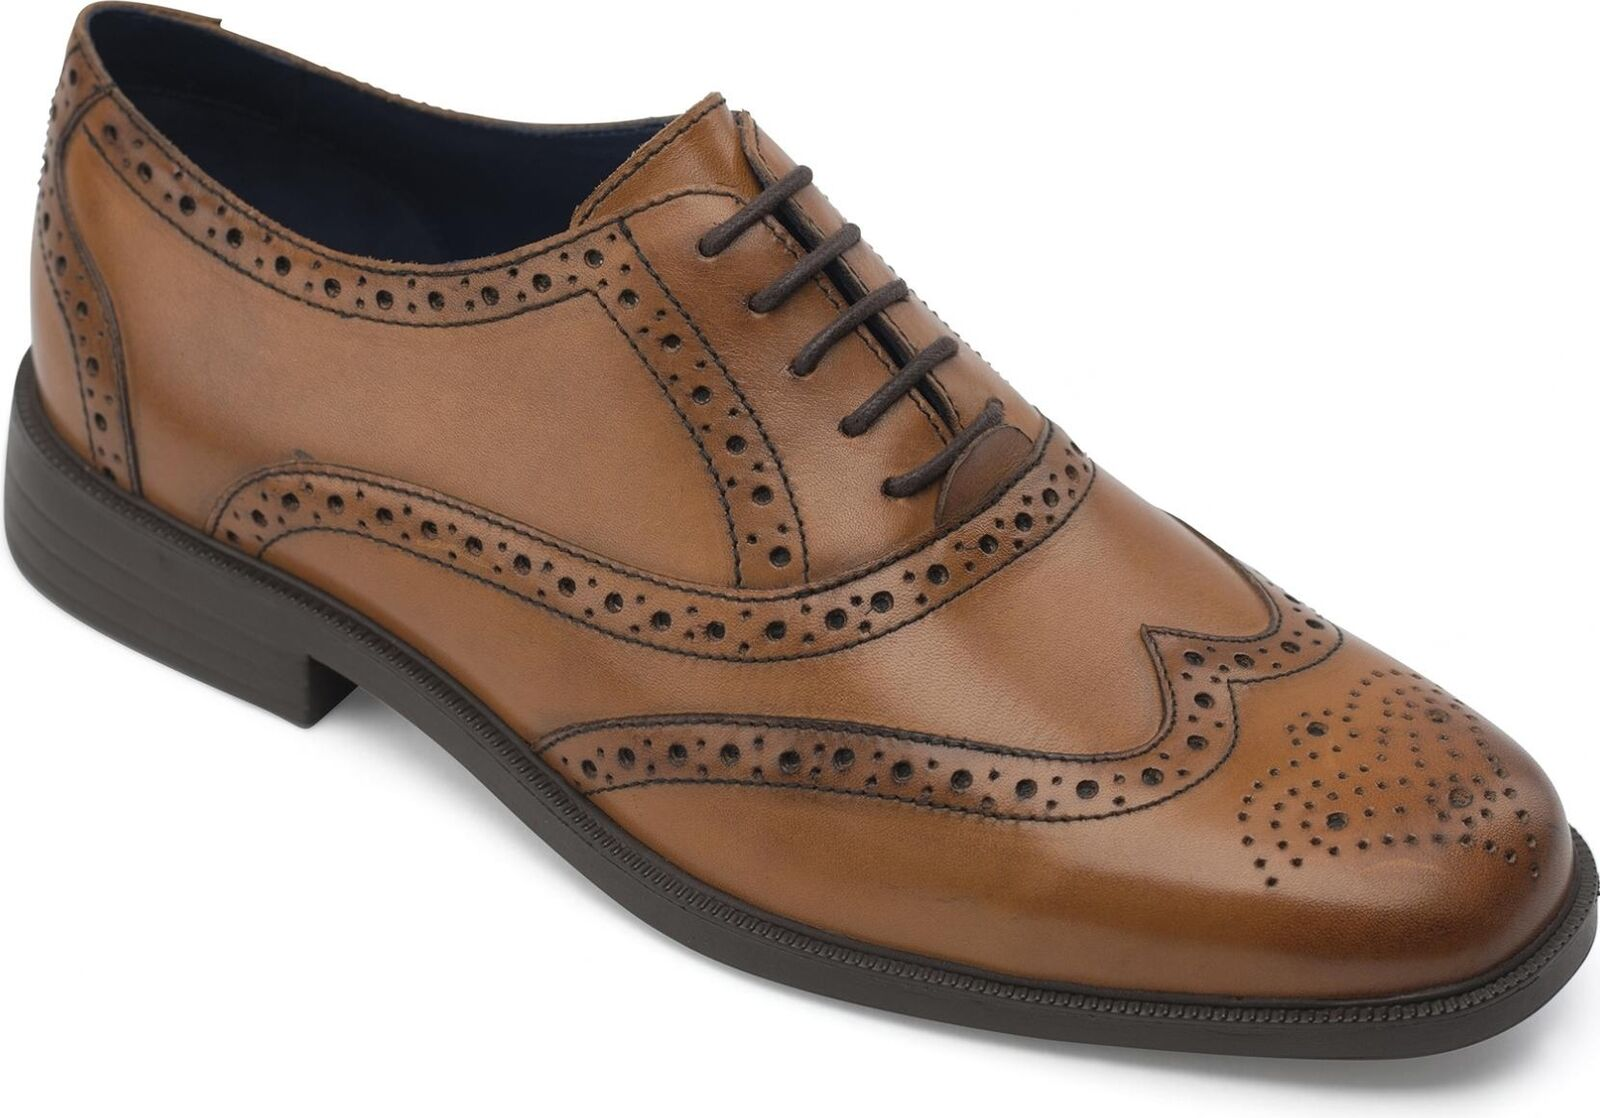 45dafa810ed31 Padders OXFORD Mens Leather Wide (G Fit) Oxford Brogue Office Smart shoes  Cognac